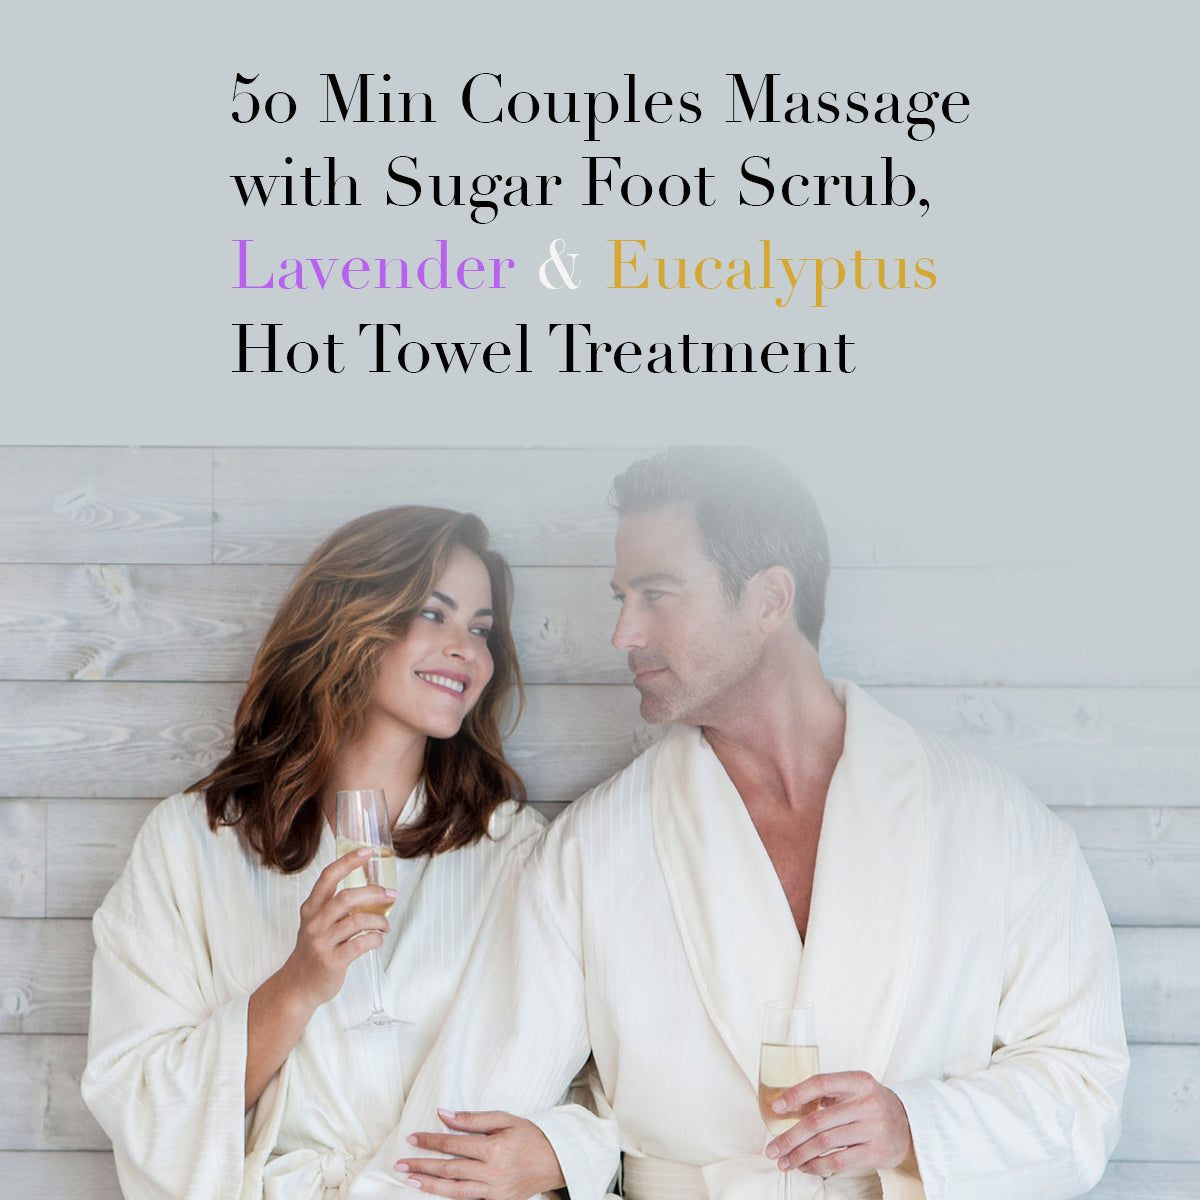 Holiday Couples Massage